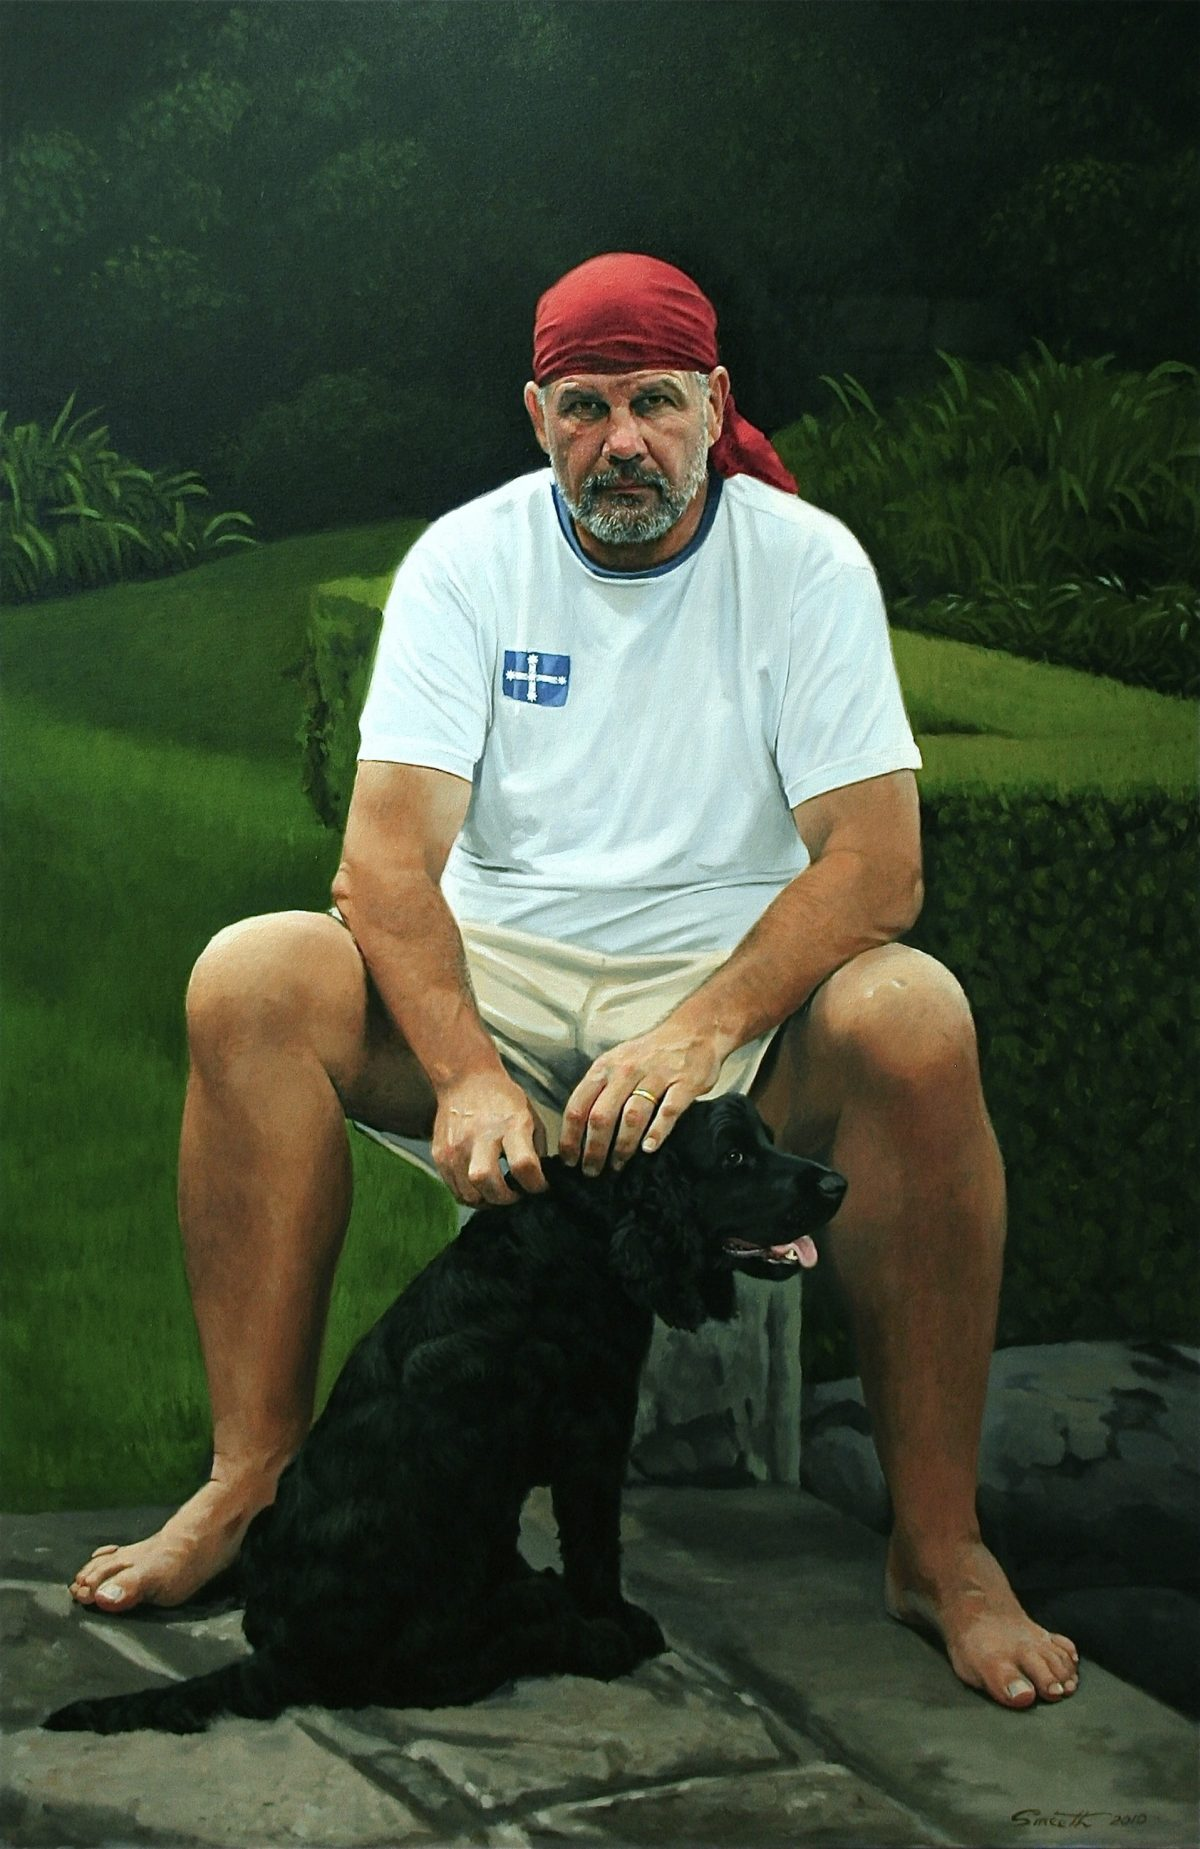 17Peter FitzSimons, Author. 2010 Oil on canvas. 180x120cm Archibald Finalist